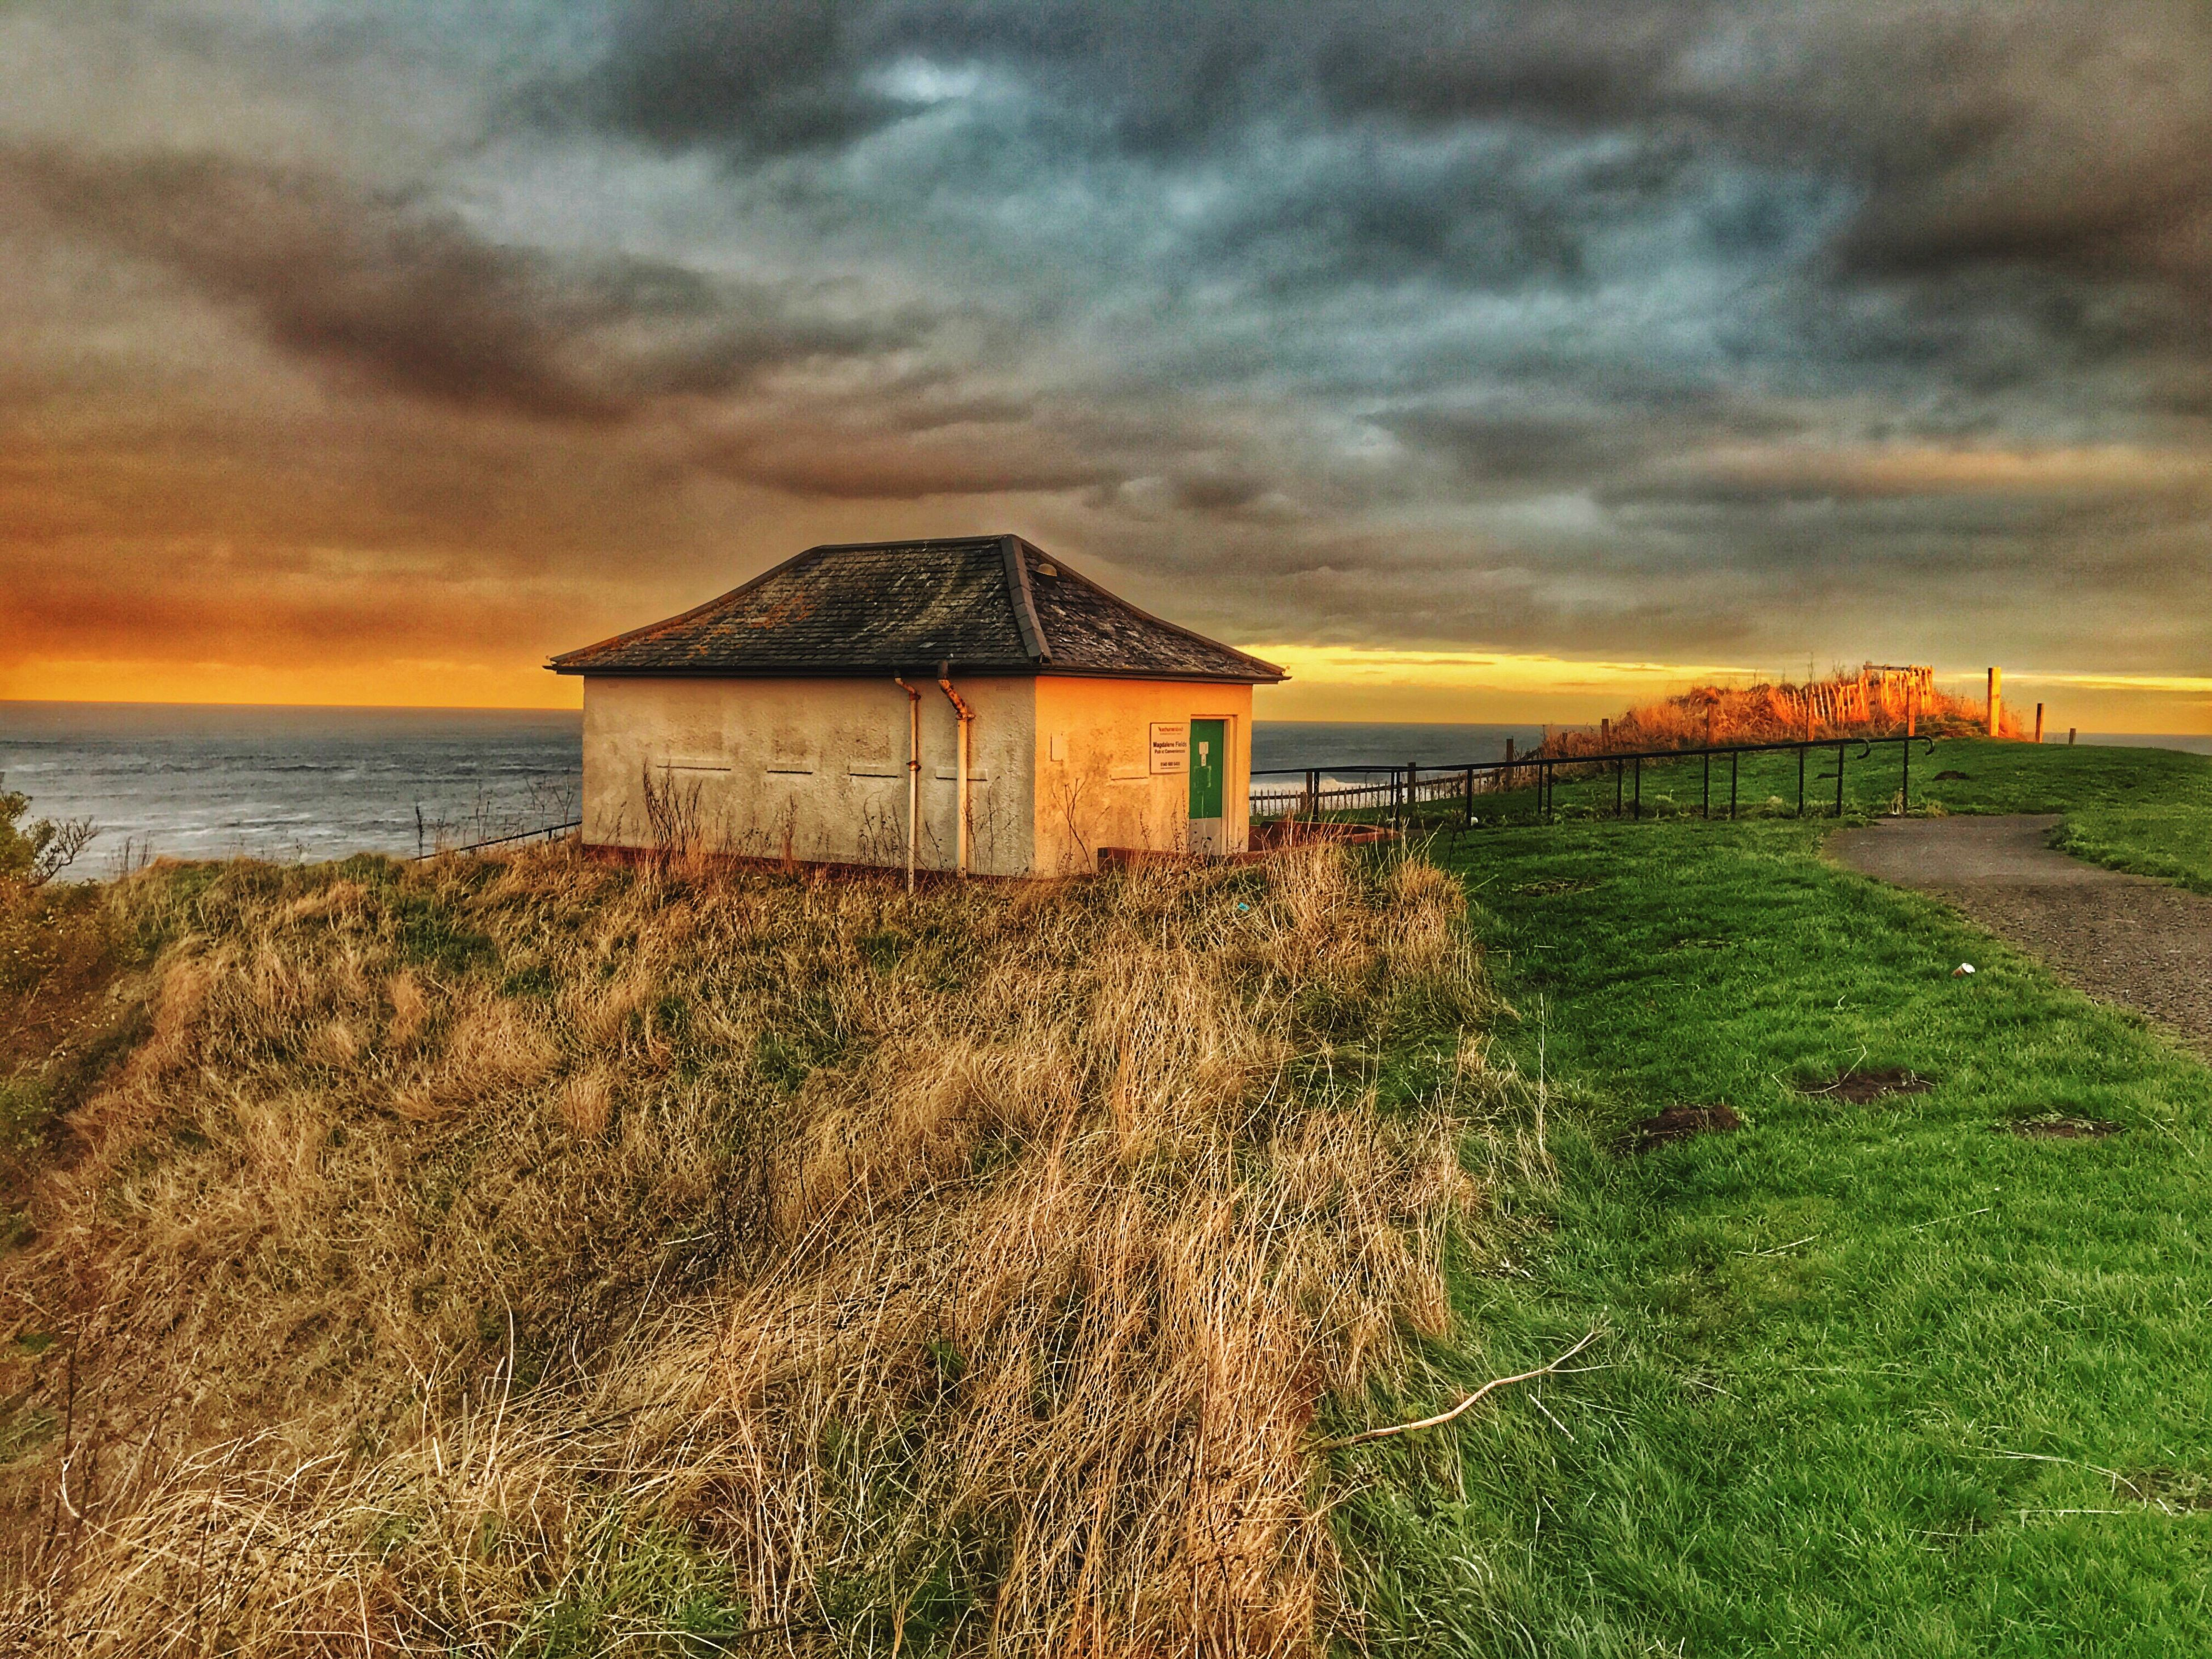 sky, sea, cloud - sky, horizon over water, nature, water, beauty in nature, outdoors, architecture, built structure, beach, no people, tranquility, scenics, building exterior, day